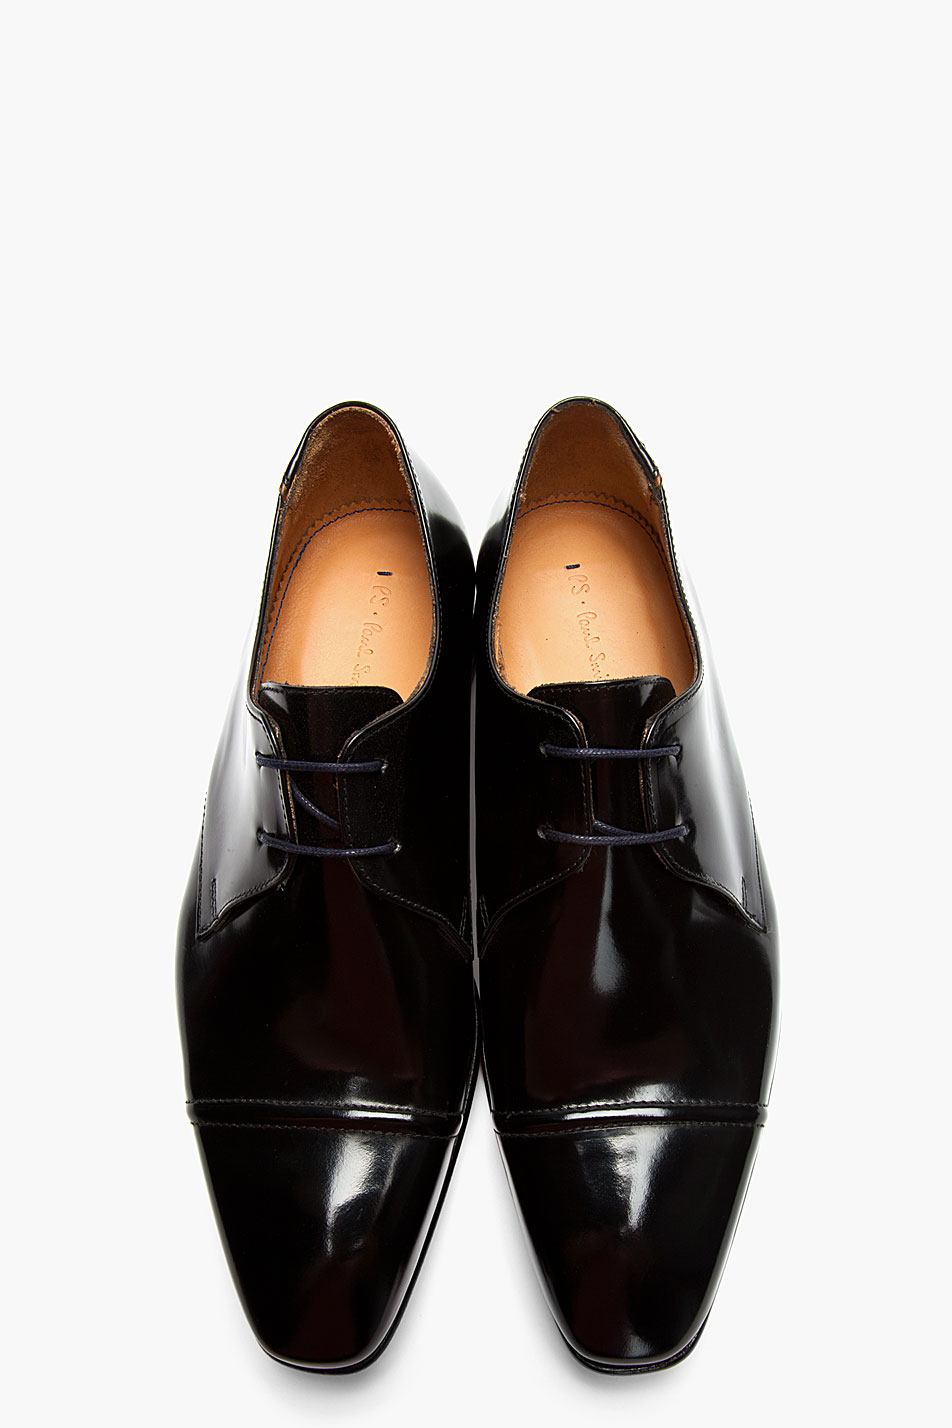 Dress to Impress Black Patent Leather Shoes